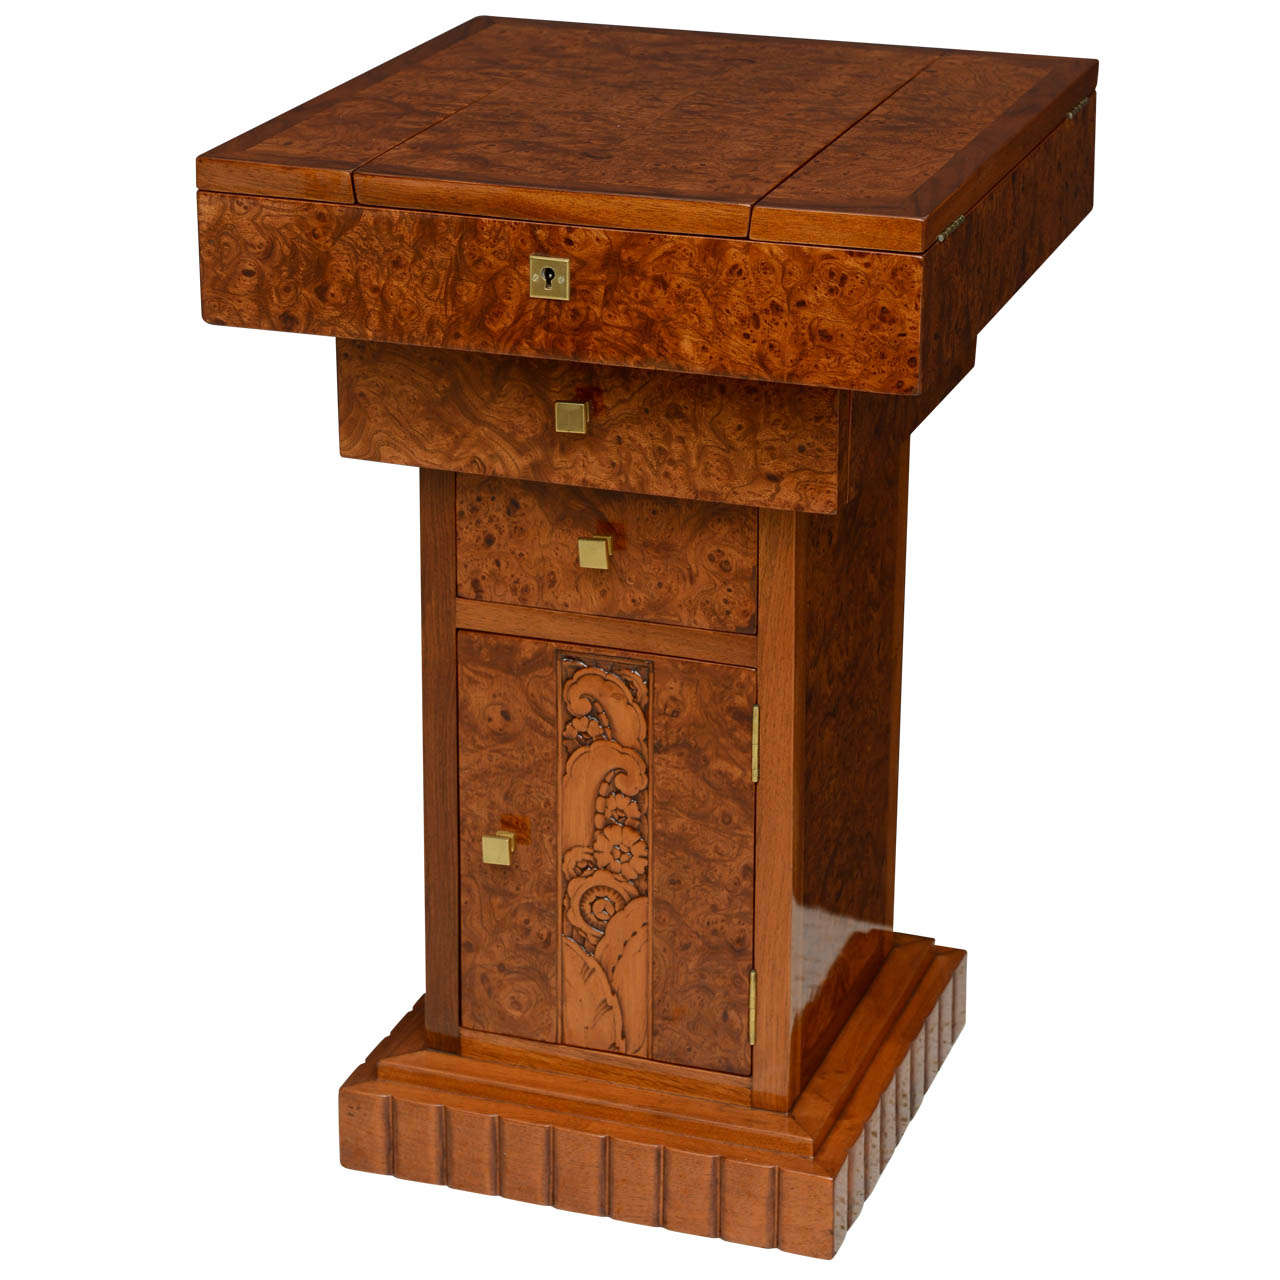 French Art Deco Burled Walnut and Walnut Work Table For Sale